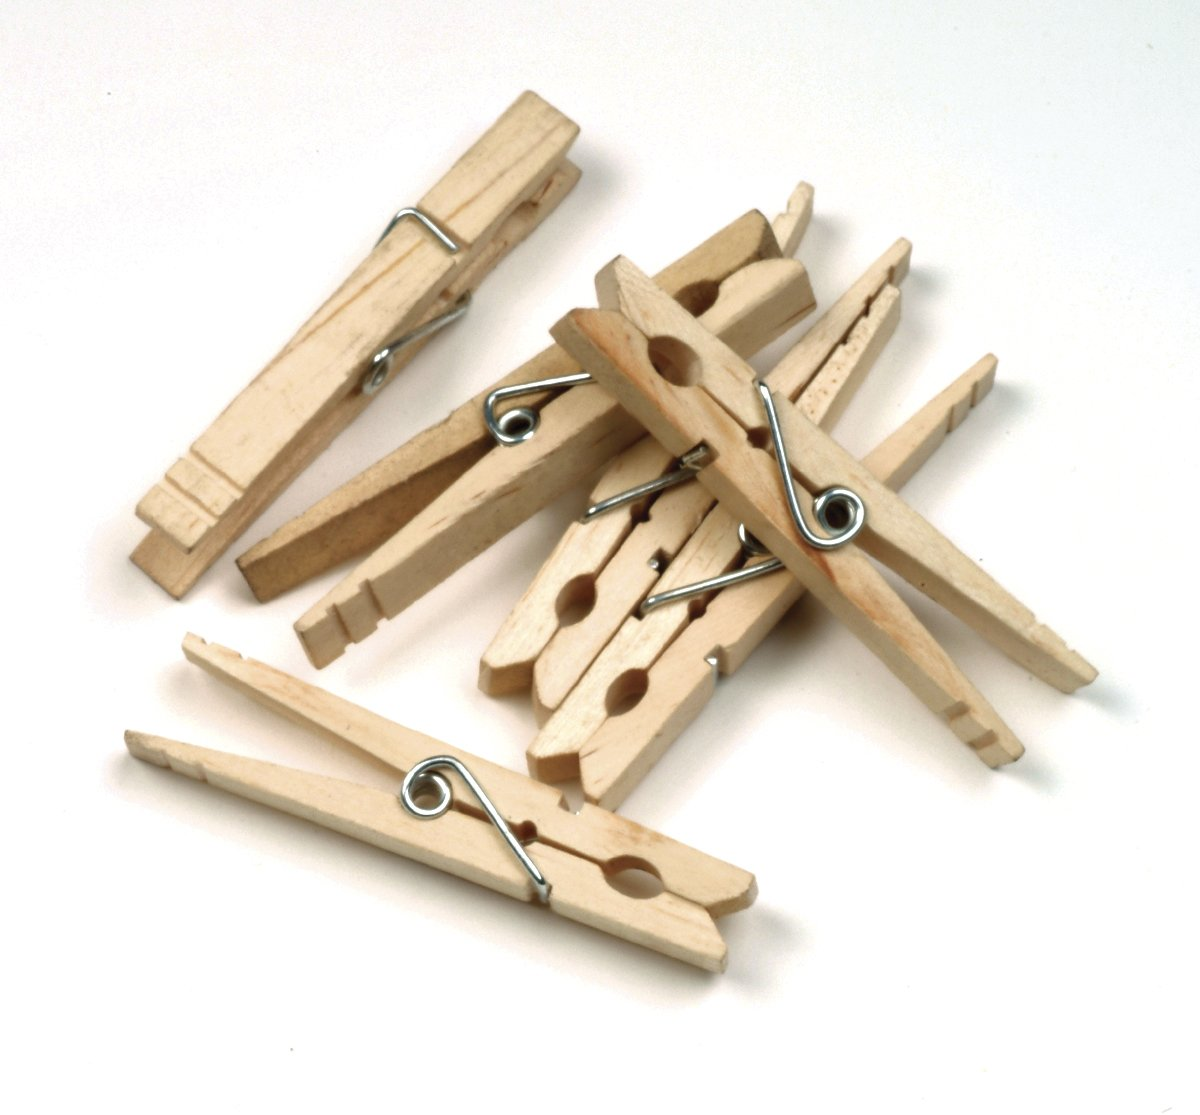 500 Pcs Wood Clothespins Wooden Laundry Clothes Pins Large Spring Regular Size